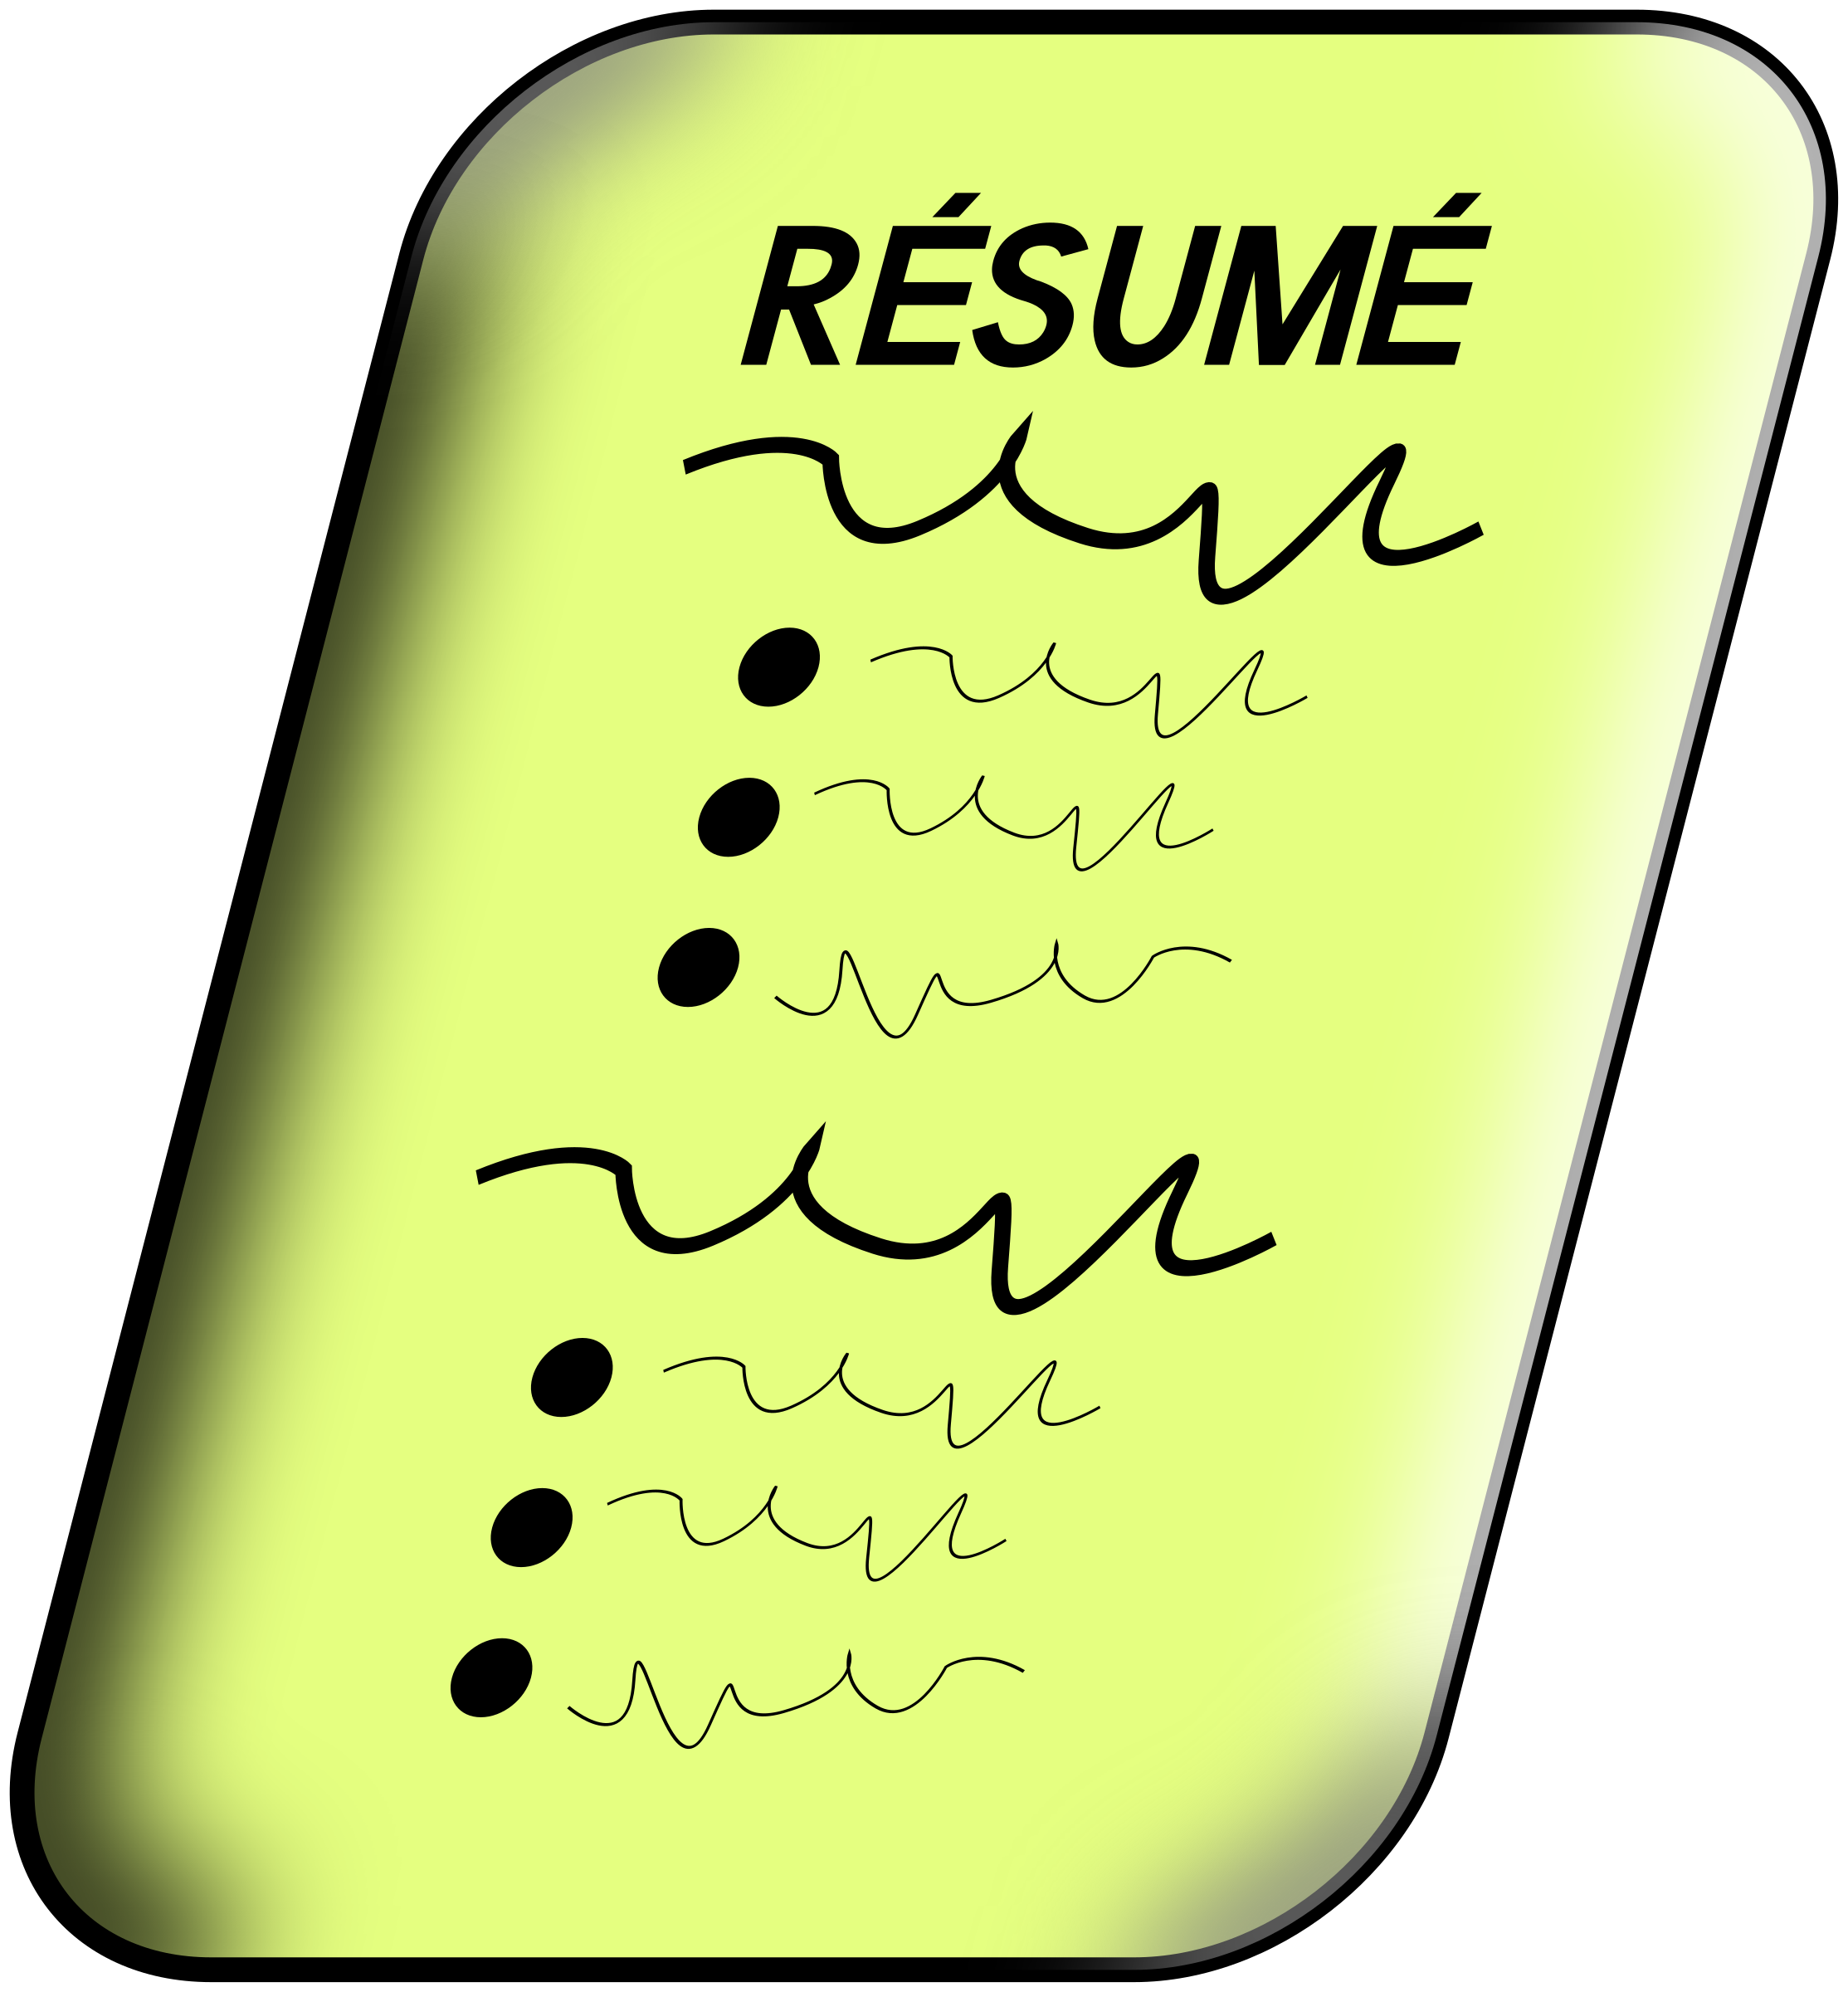 how to upload your resume cv on jobberman acegoals in resume resume cv cover leter log in sign up upload clipart